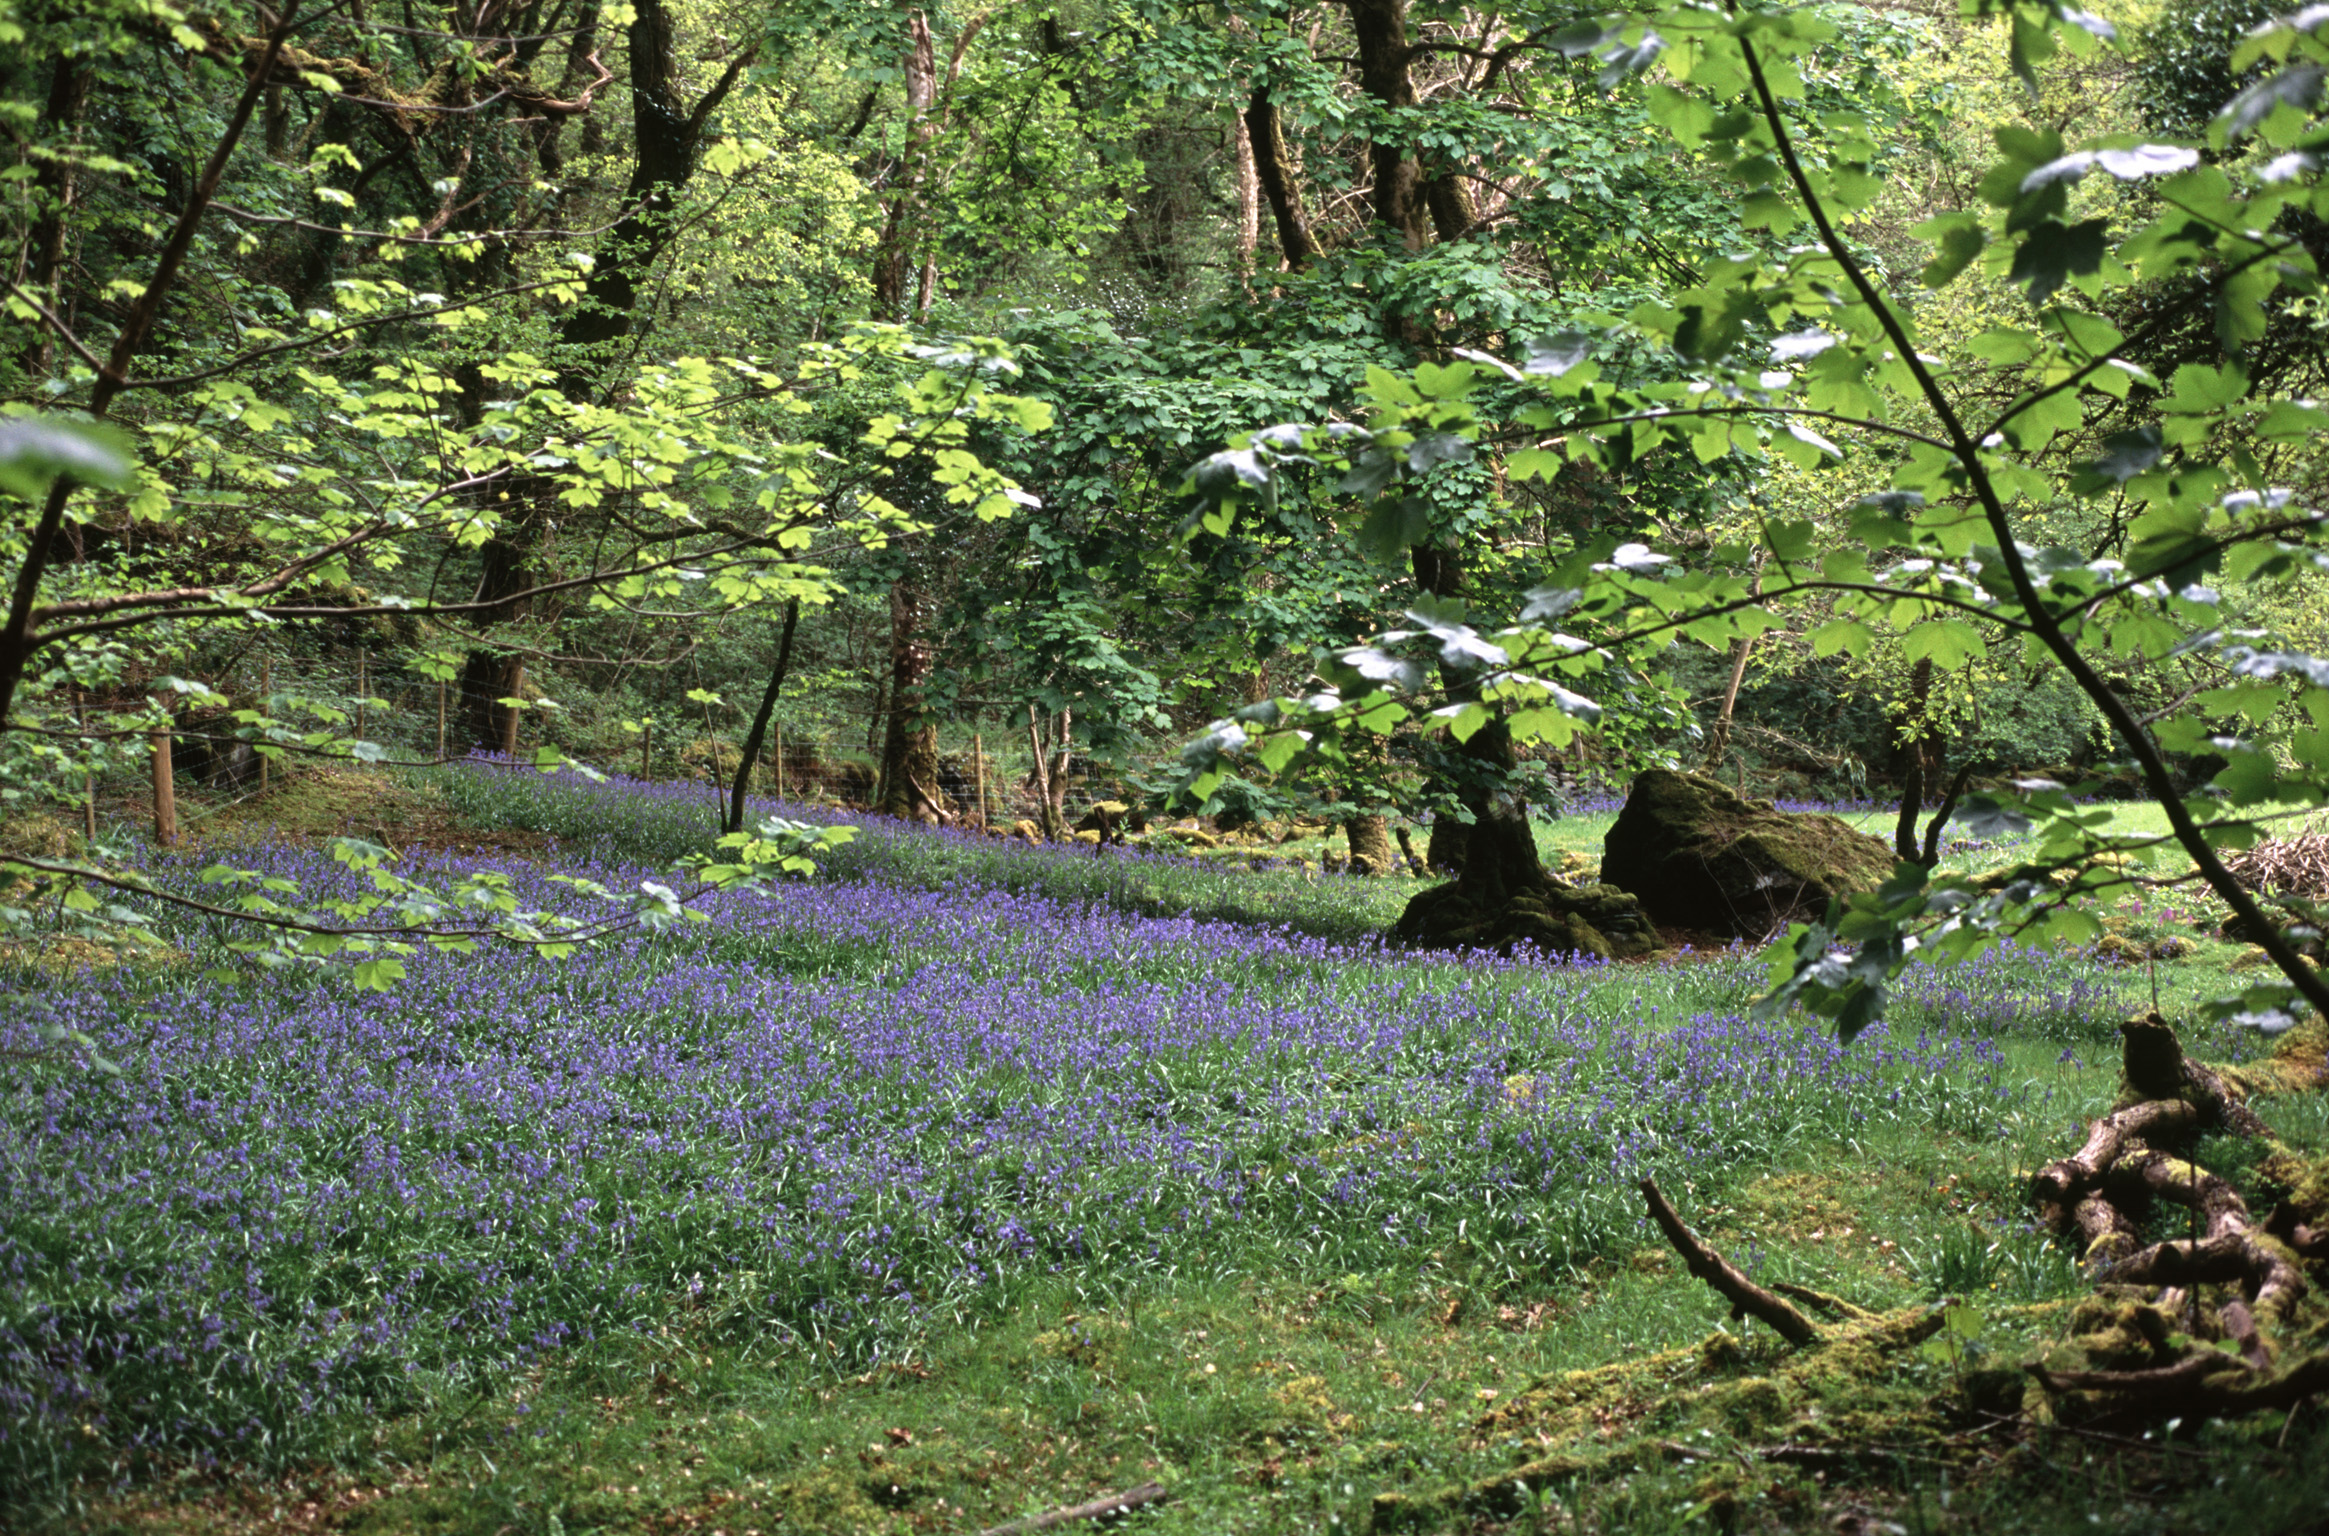 Scenic landscape of blue bells flowering in an open glade amongst the leafy green trees in woodland